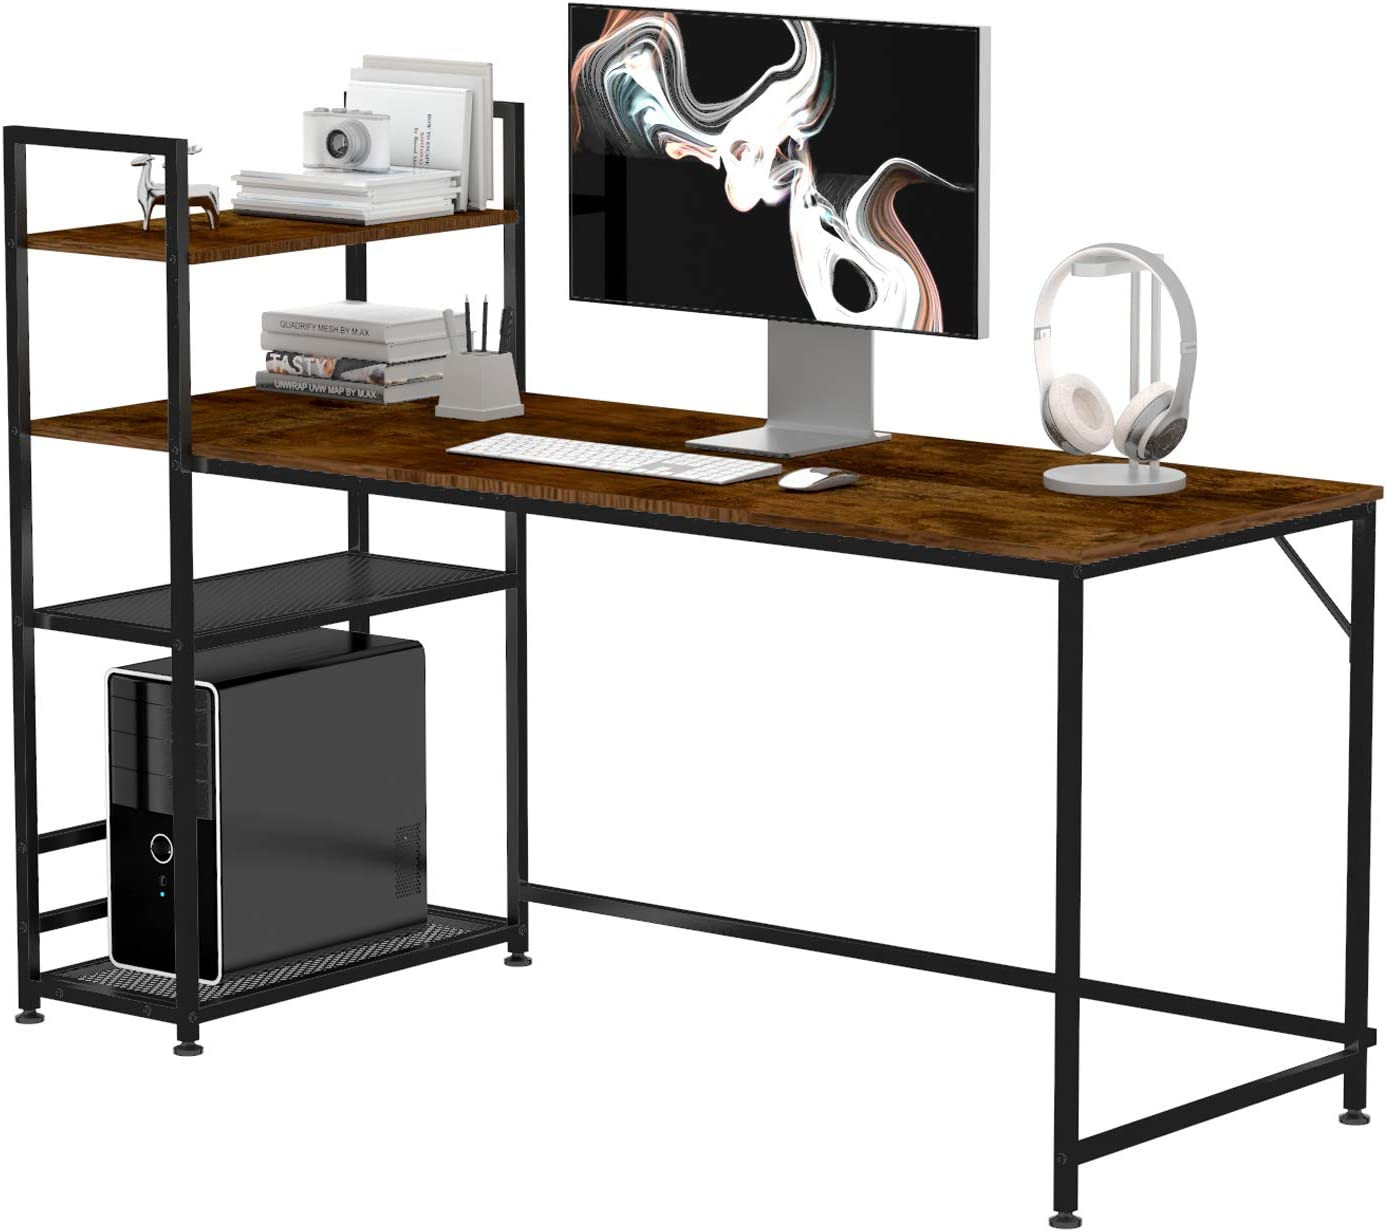 Modern Simple Style Desks for Bedroom Office HOMIDEC Writing Computer Desk Home Office Work Desk with Bookshelf Study Laptop Table with 4 Tier DIY Storage Shelves 62.9x23.6x43.3inch